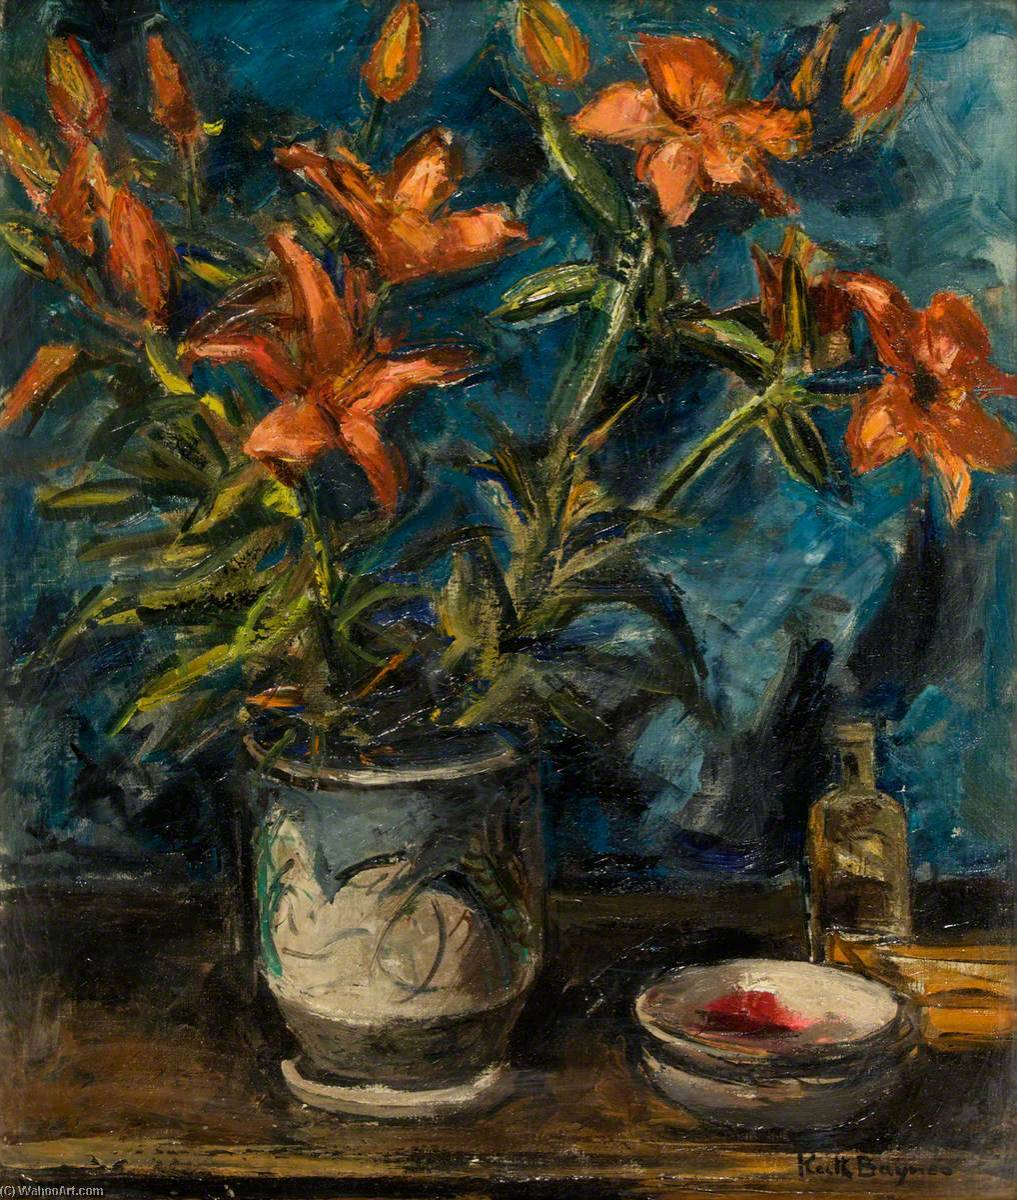 Flower Piece, 1940 by Keith Baynes | Famous Paintings Reproductions | WahooArt.com